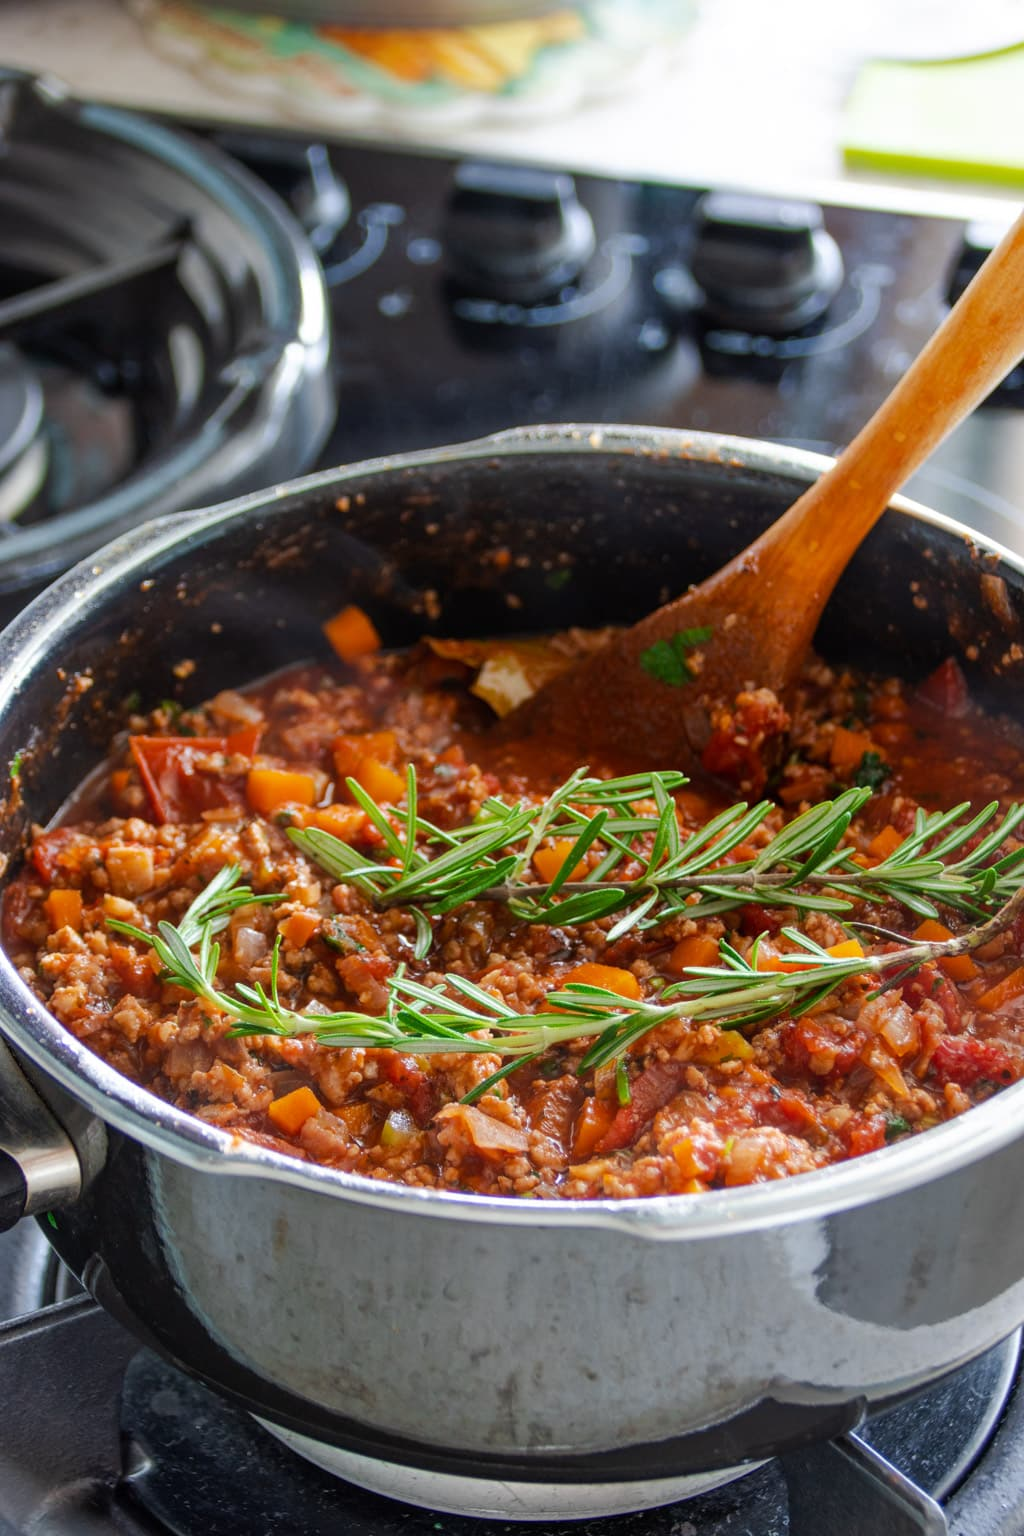 Stewing bolognese sauce in a pot, with added rosemary herbs